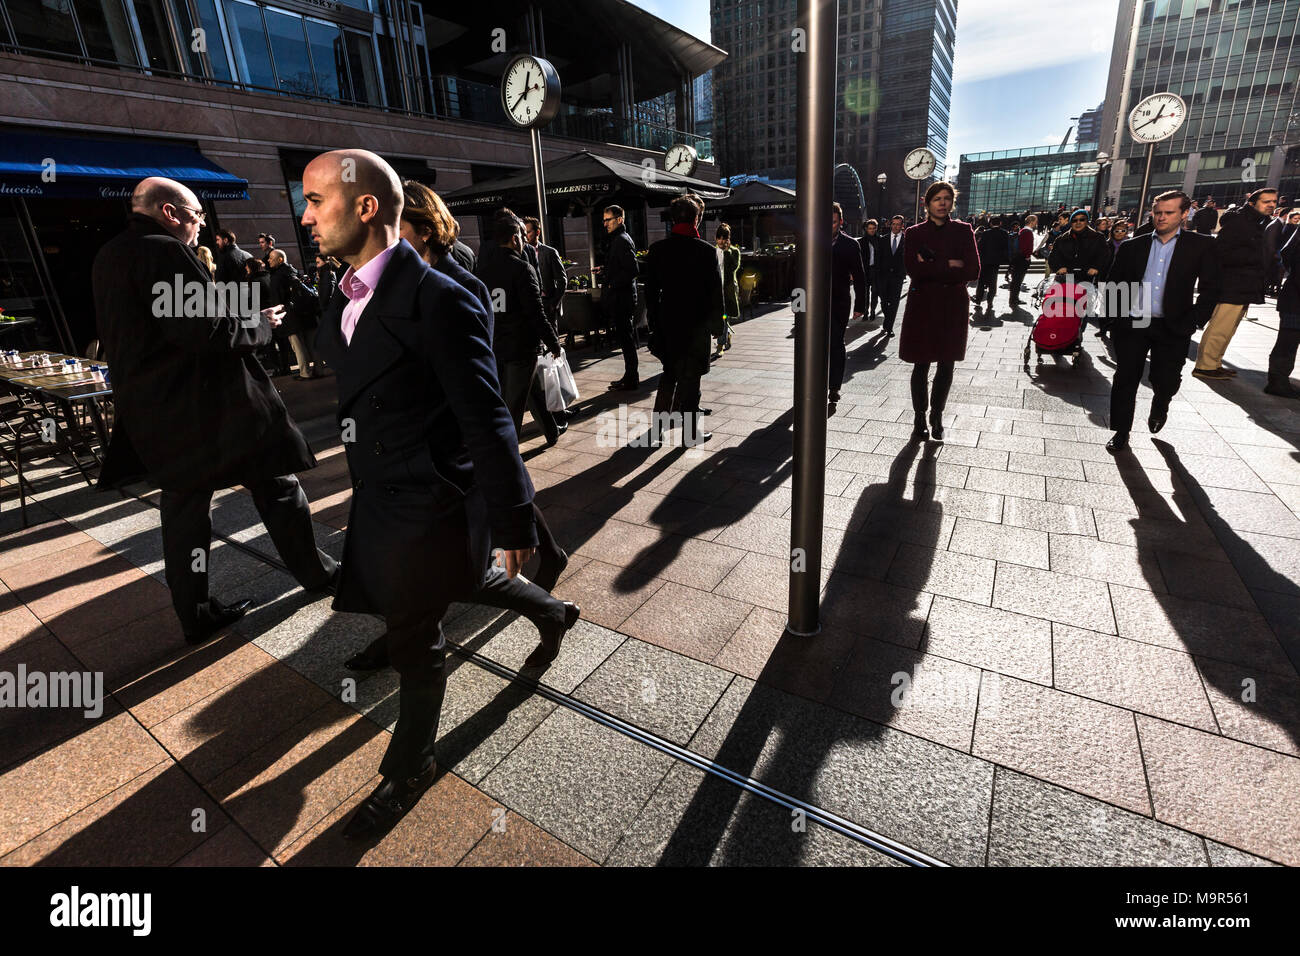 Business workers at their lunch break in Canary Wharf, London's financial district. London, UK. - Stock Image